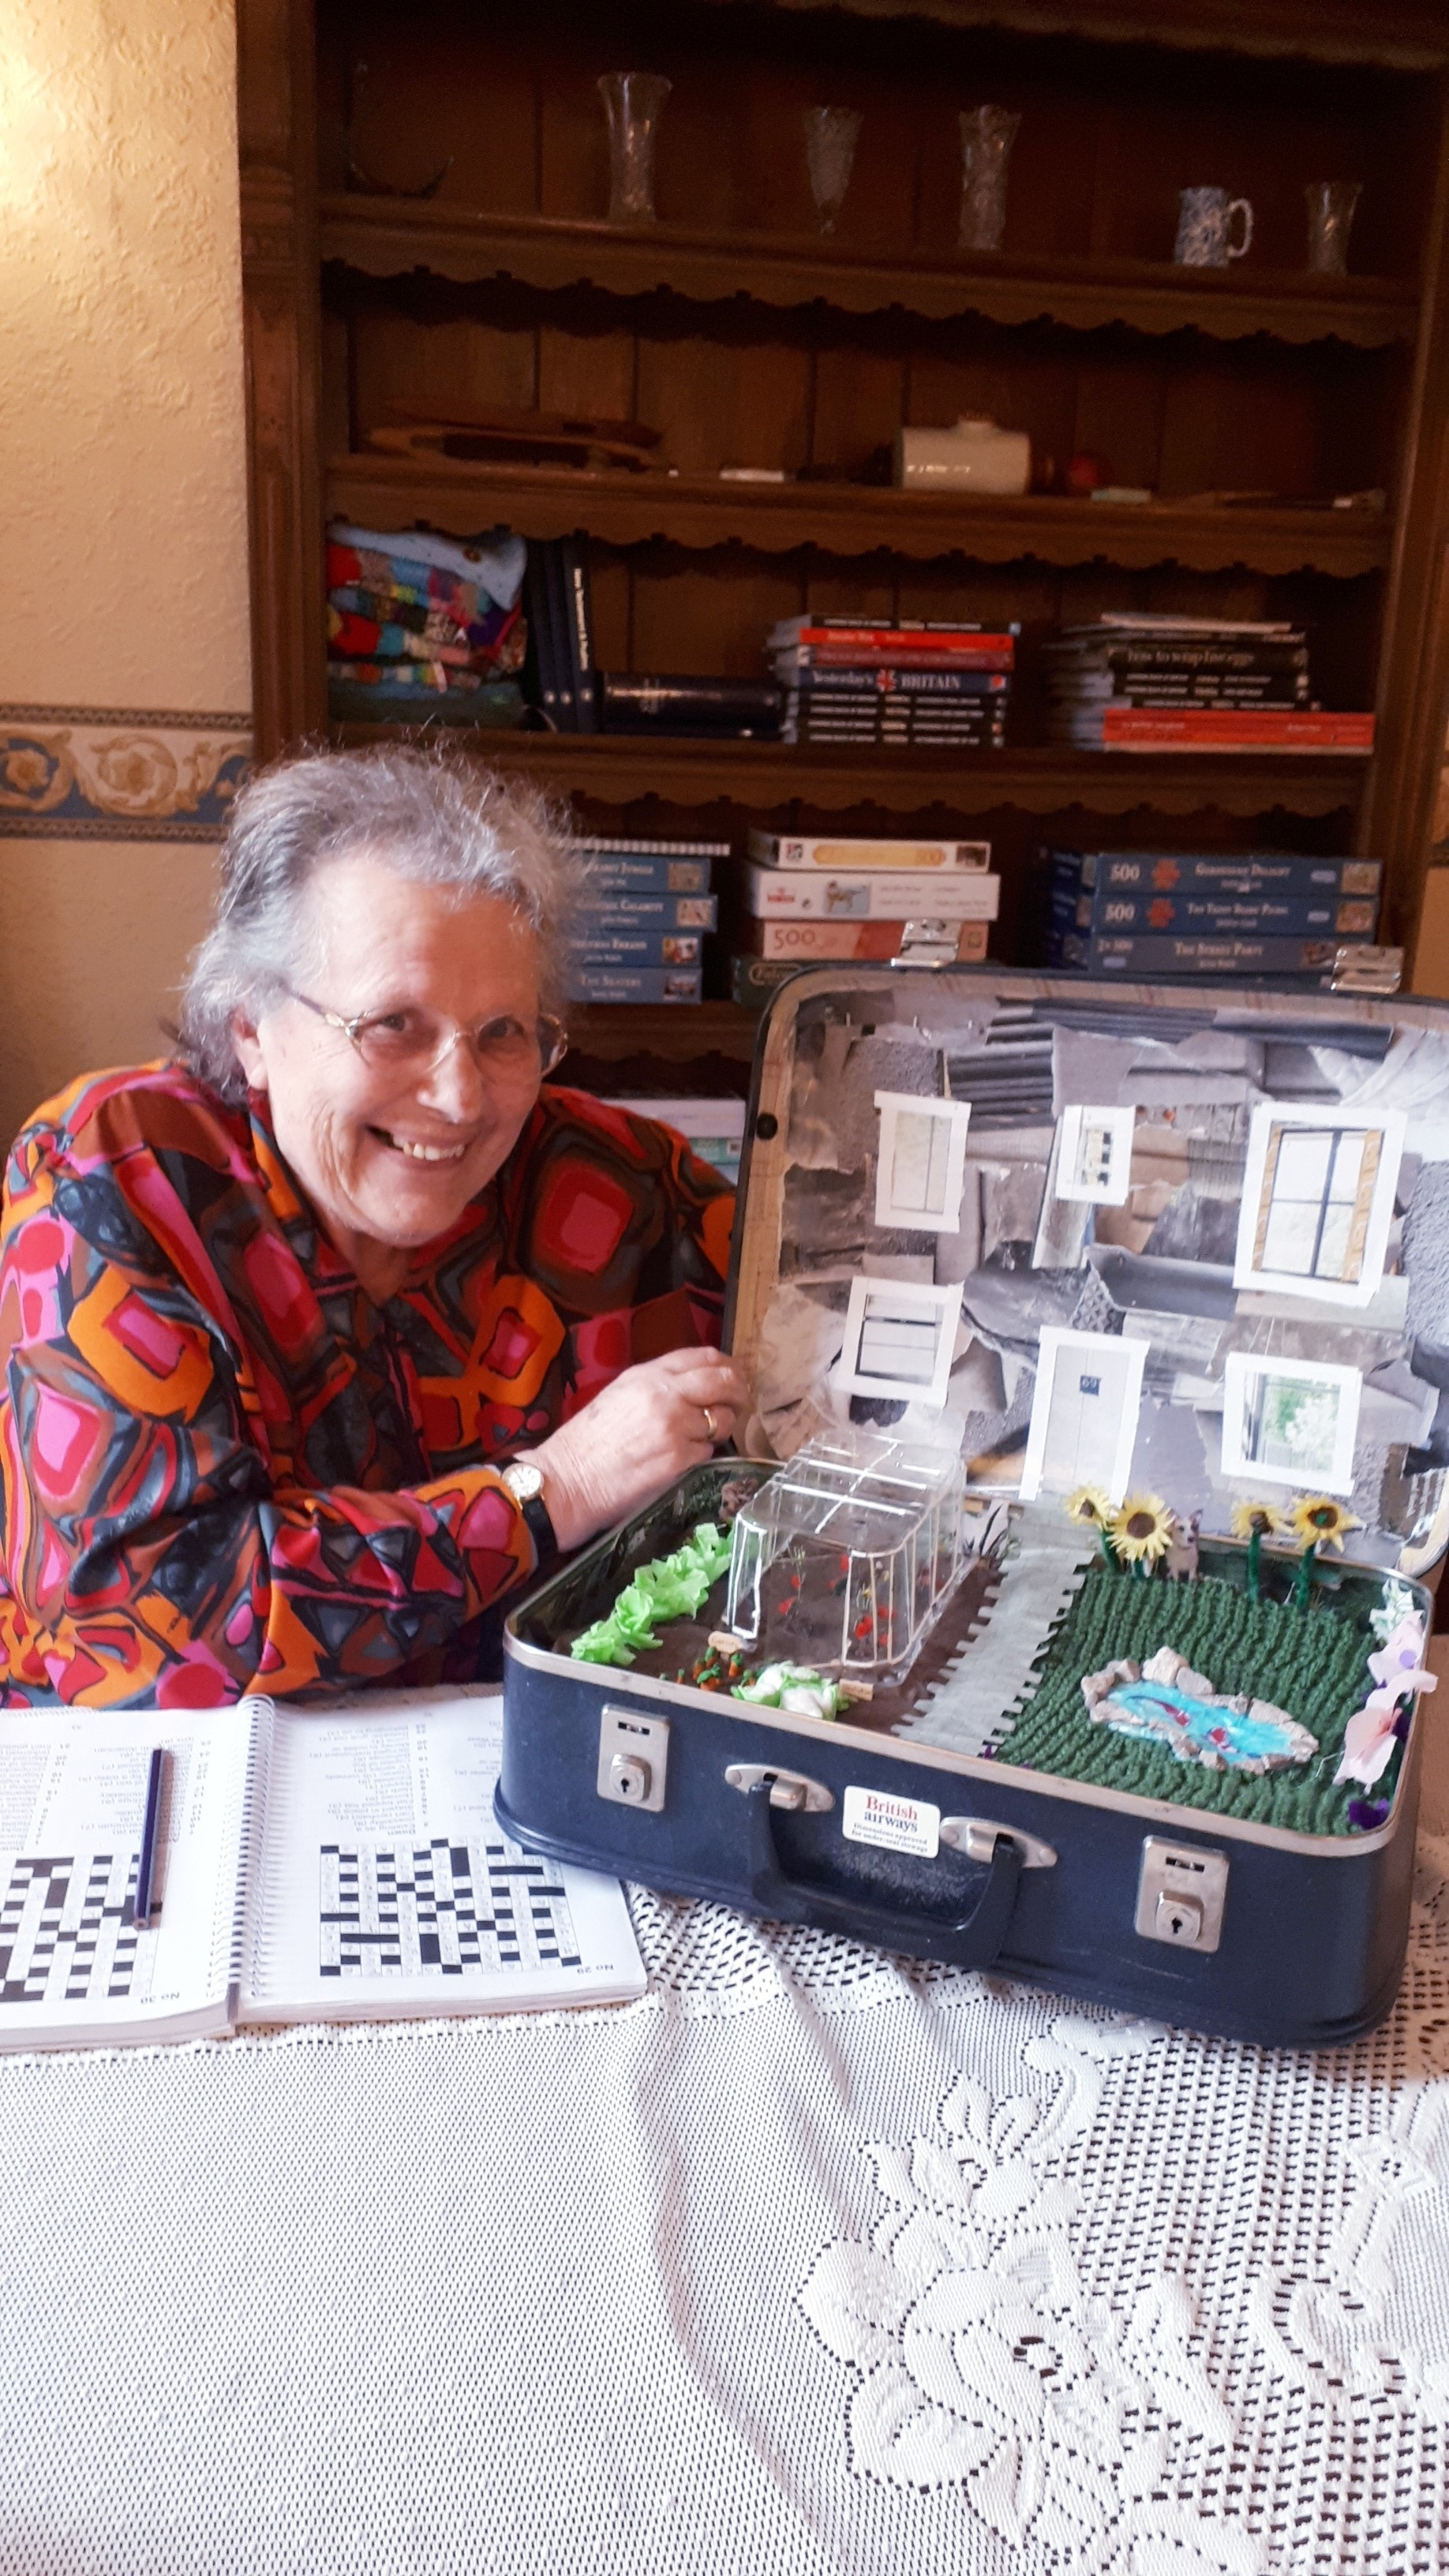 Margaret Trivias with the pop-up garden